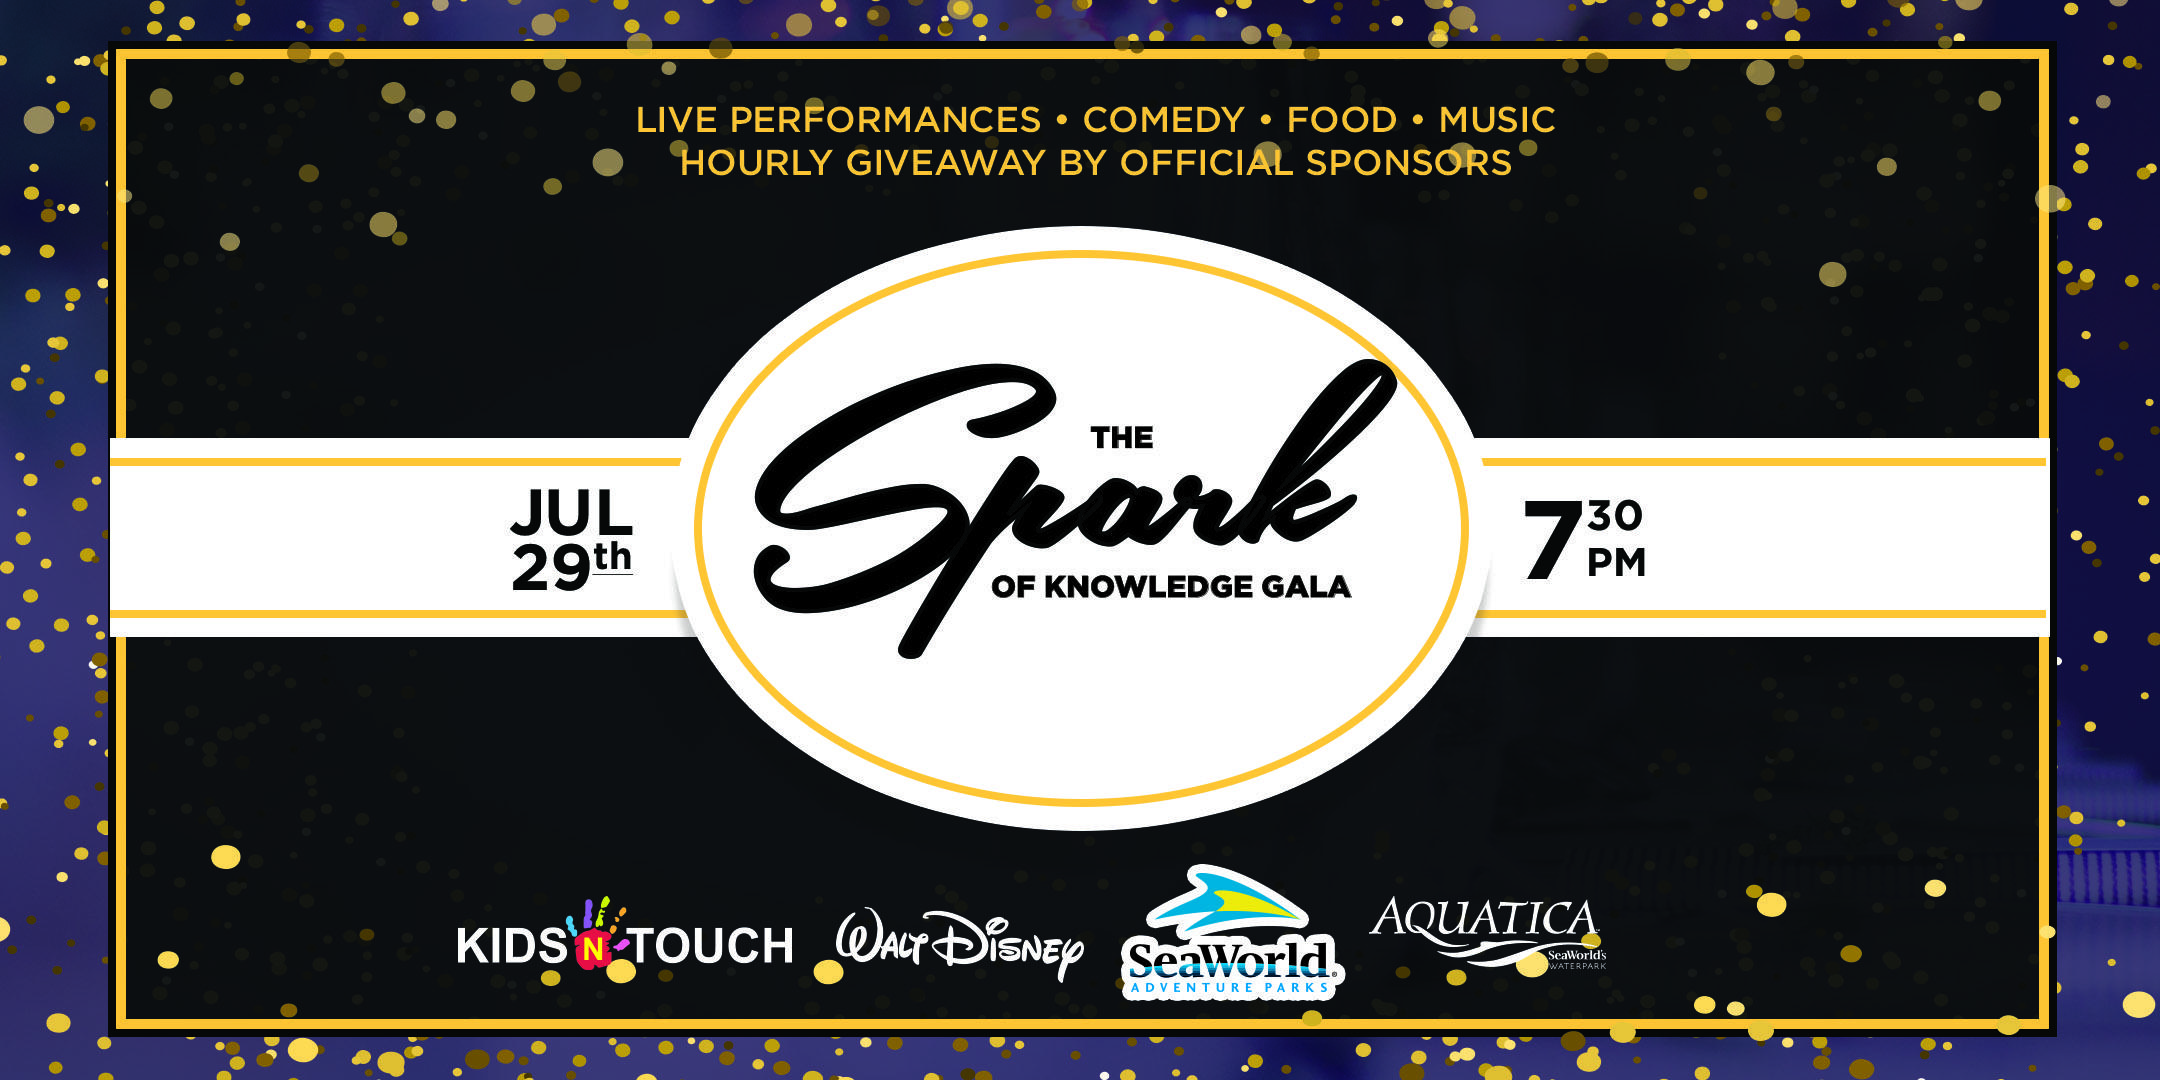 The Spark of Knowledge Gala. The Spark of Knowledge Gala